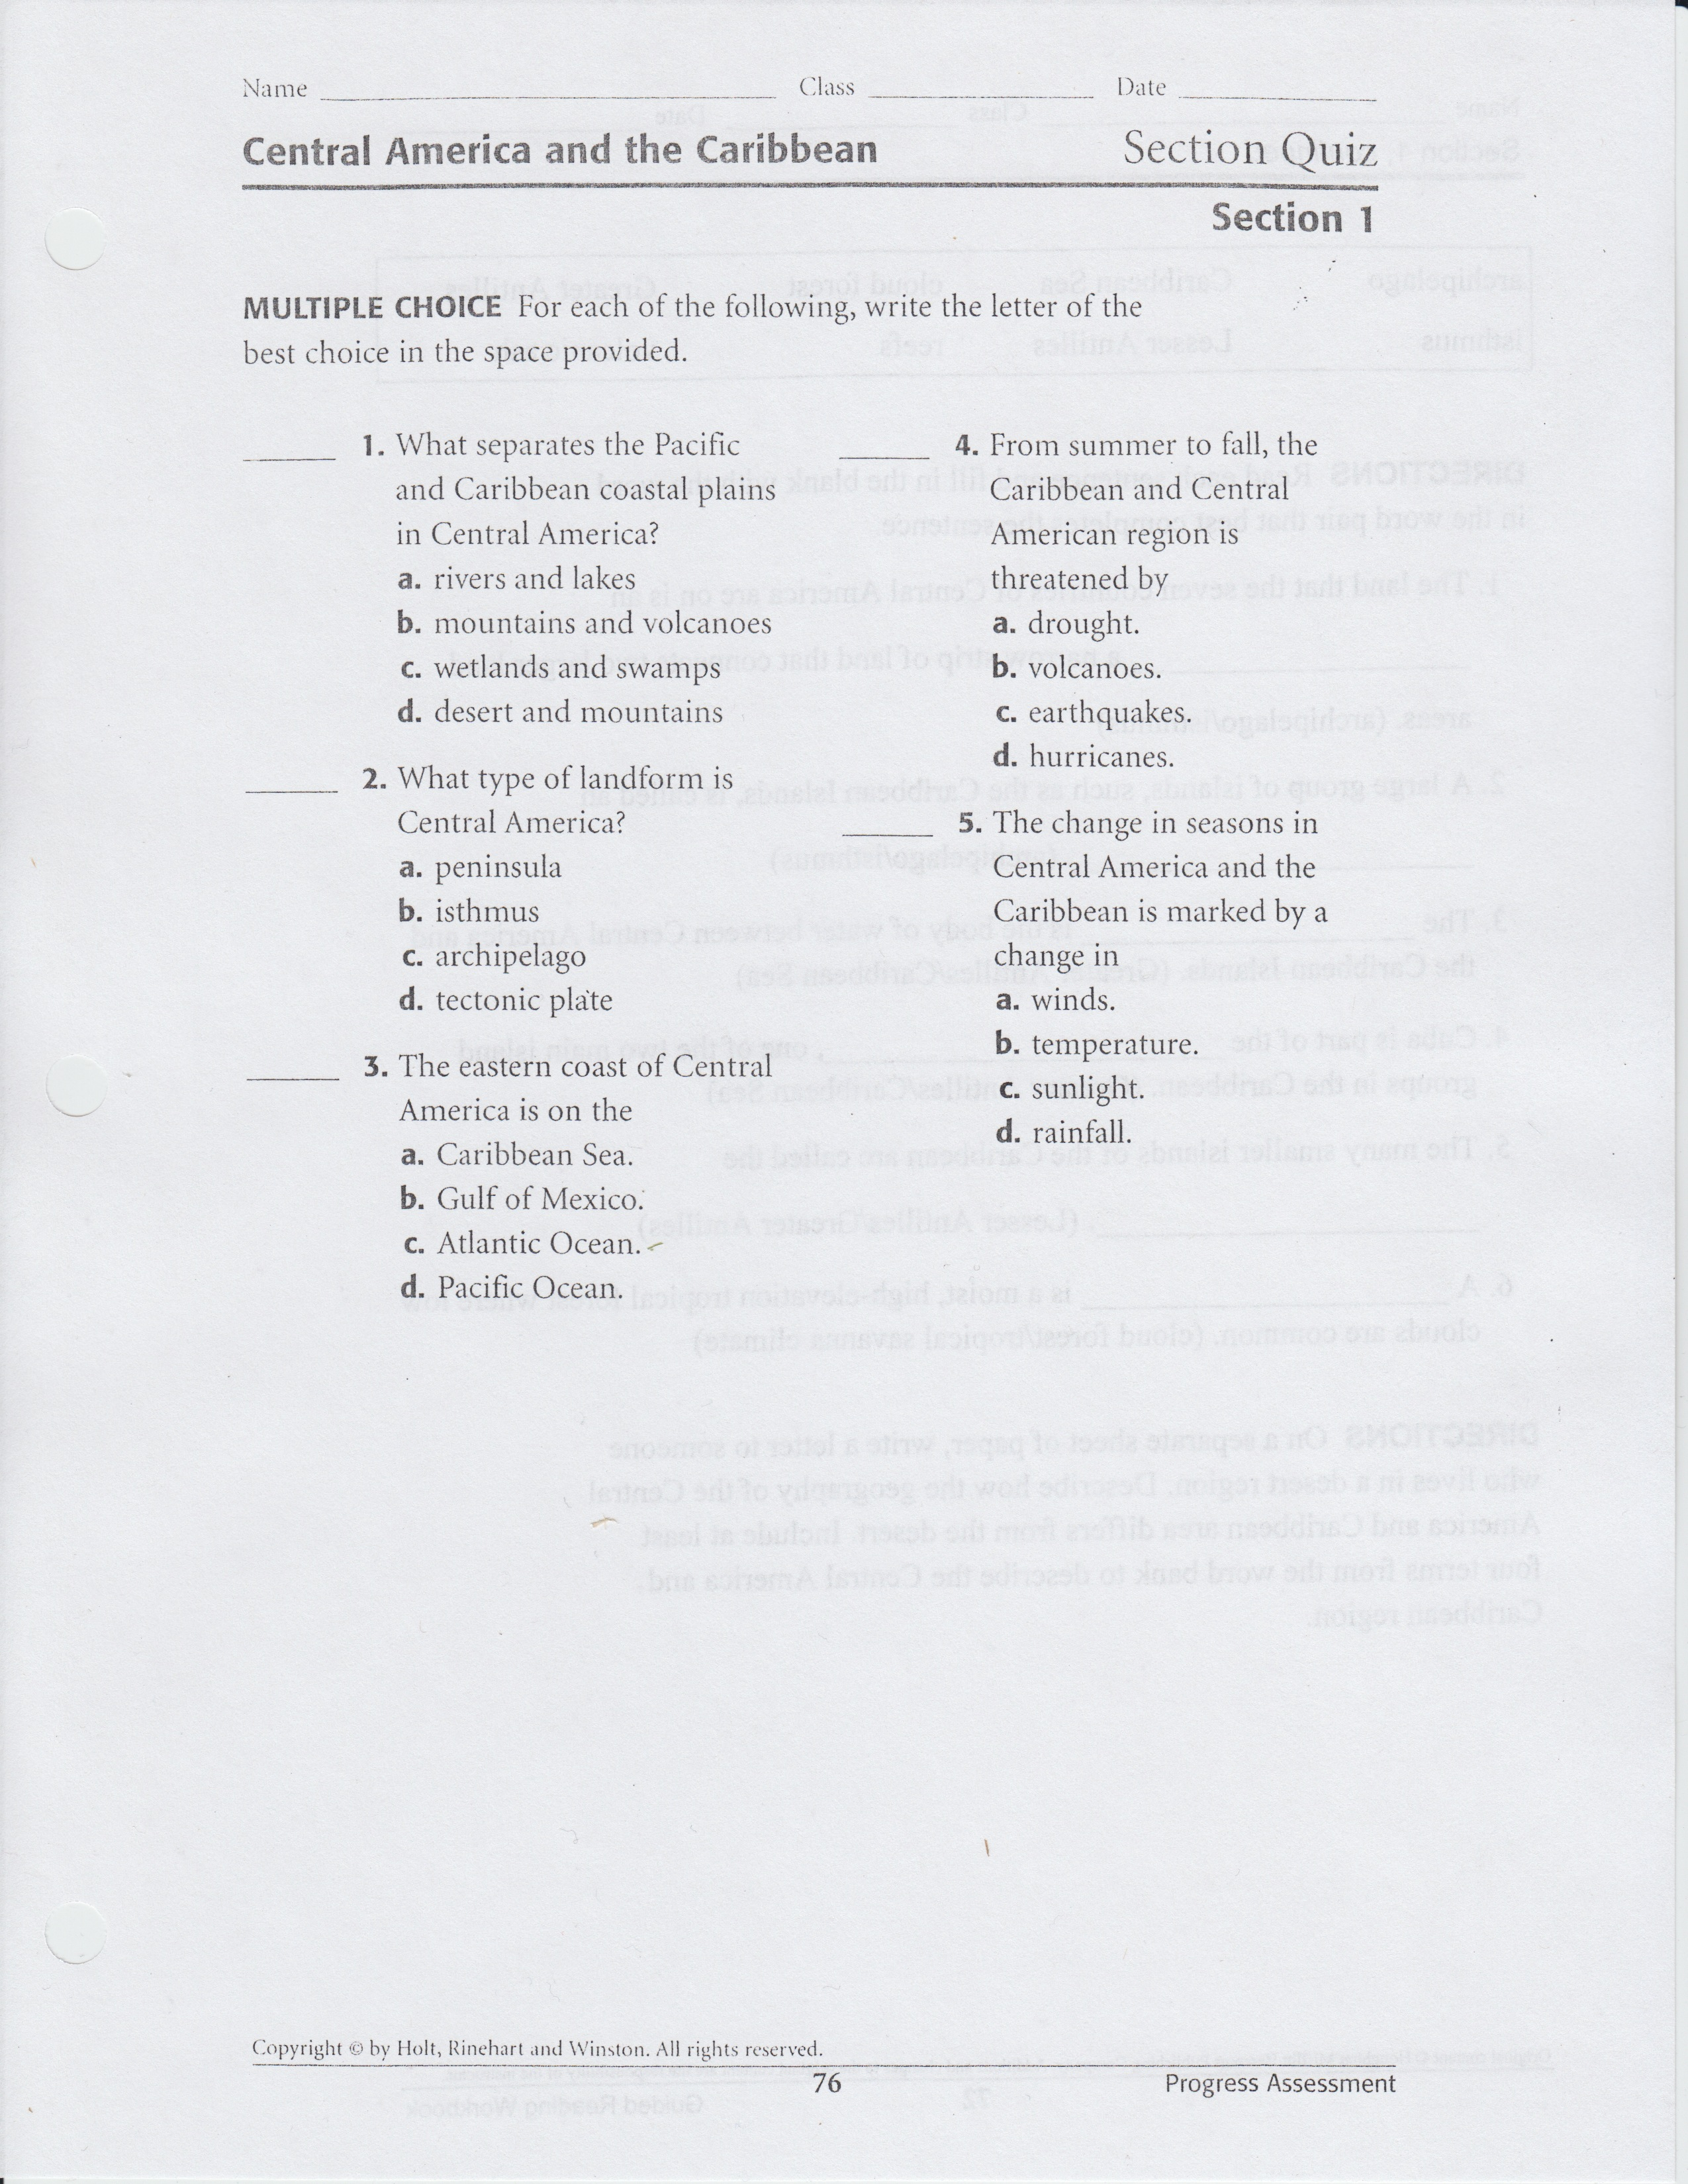 Kavcak Kimberly 2nd Marking Period Class Worksheets Rubics Notes And Study Guides